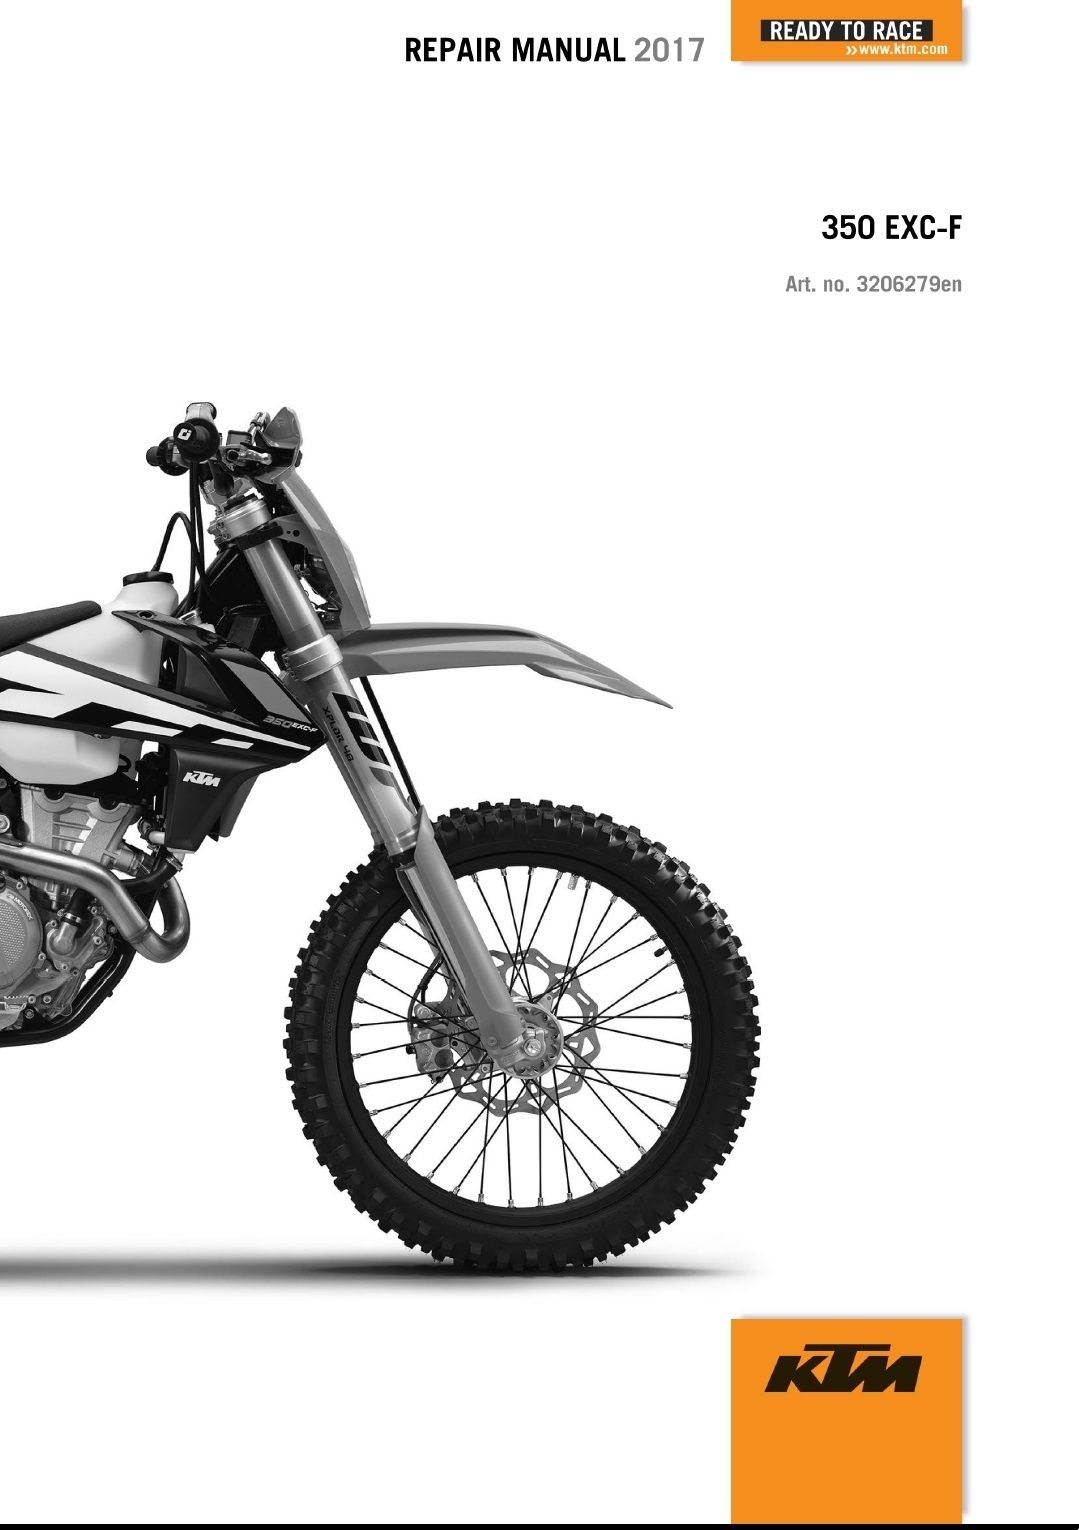 2017 ktm 350 exc f xcf w service repair manual rh pinterest com ktm 125 sx 2008 repair manual ktm 125 sx repair manual 2013